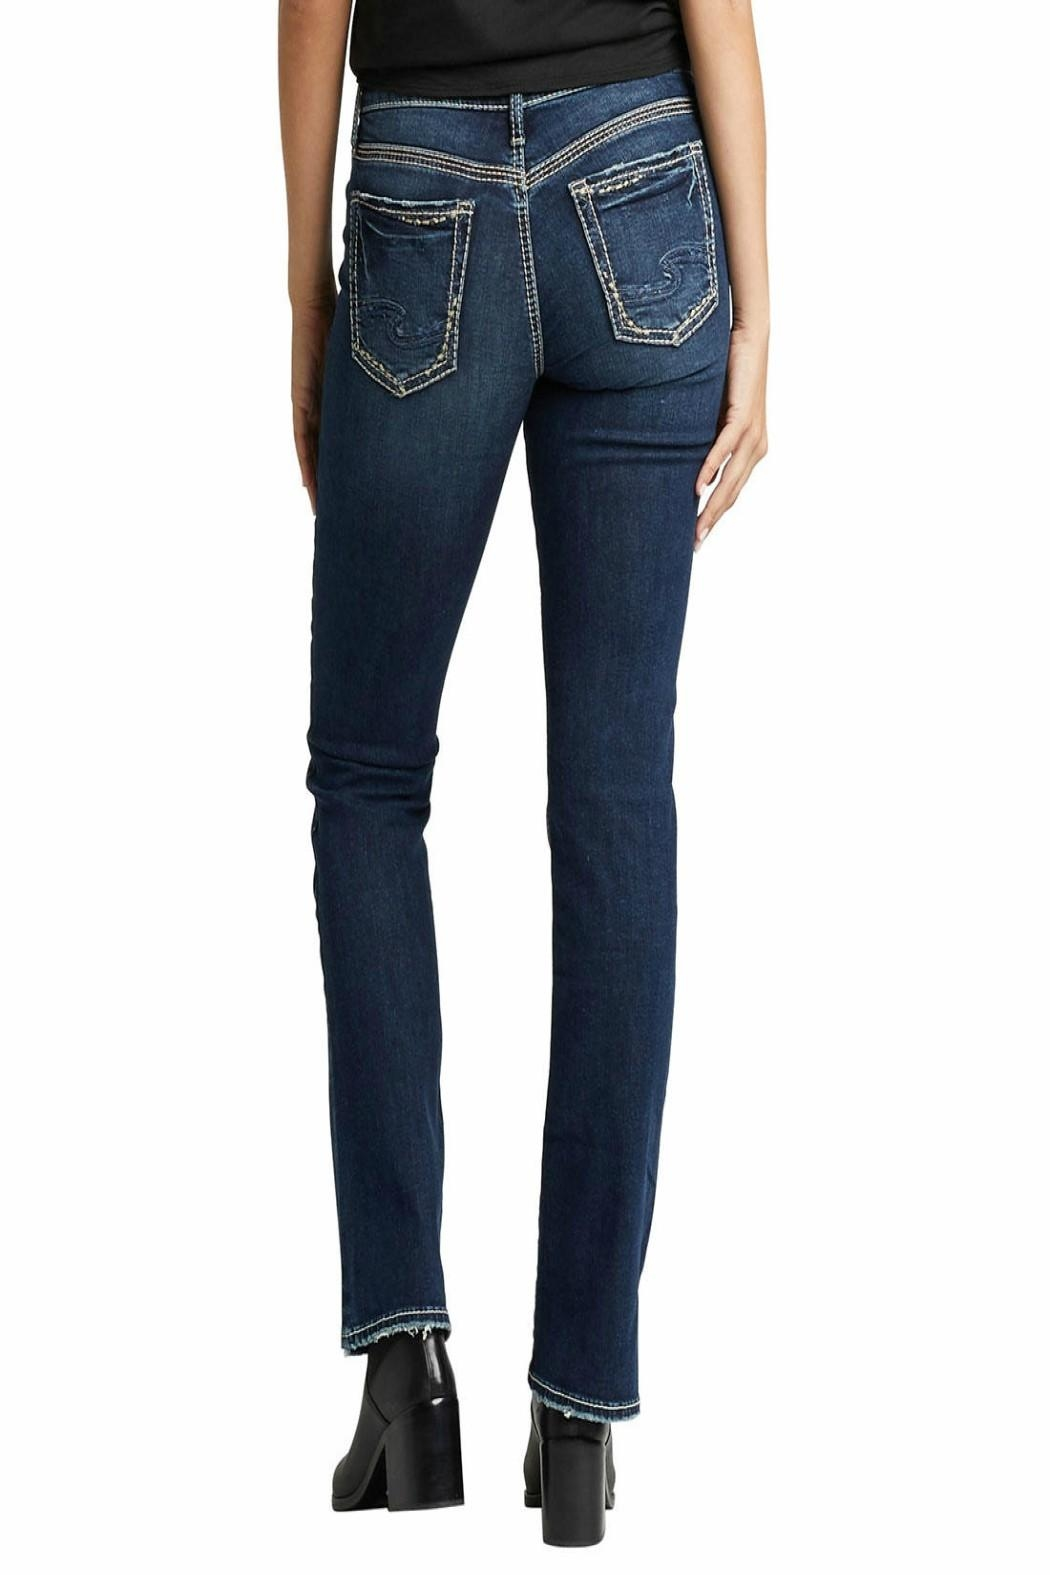 Silver Jeans Co. Suki Slim-Boot Jeans - Front Full Image